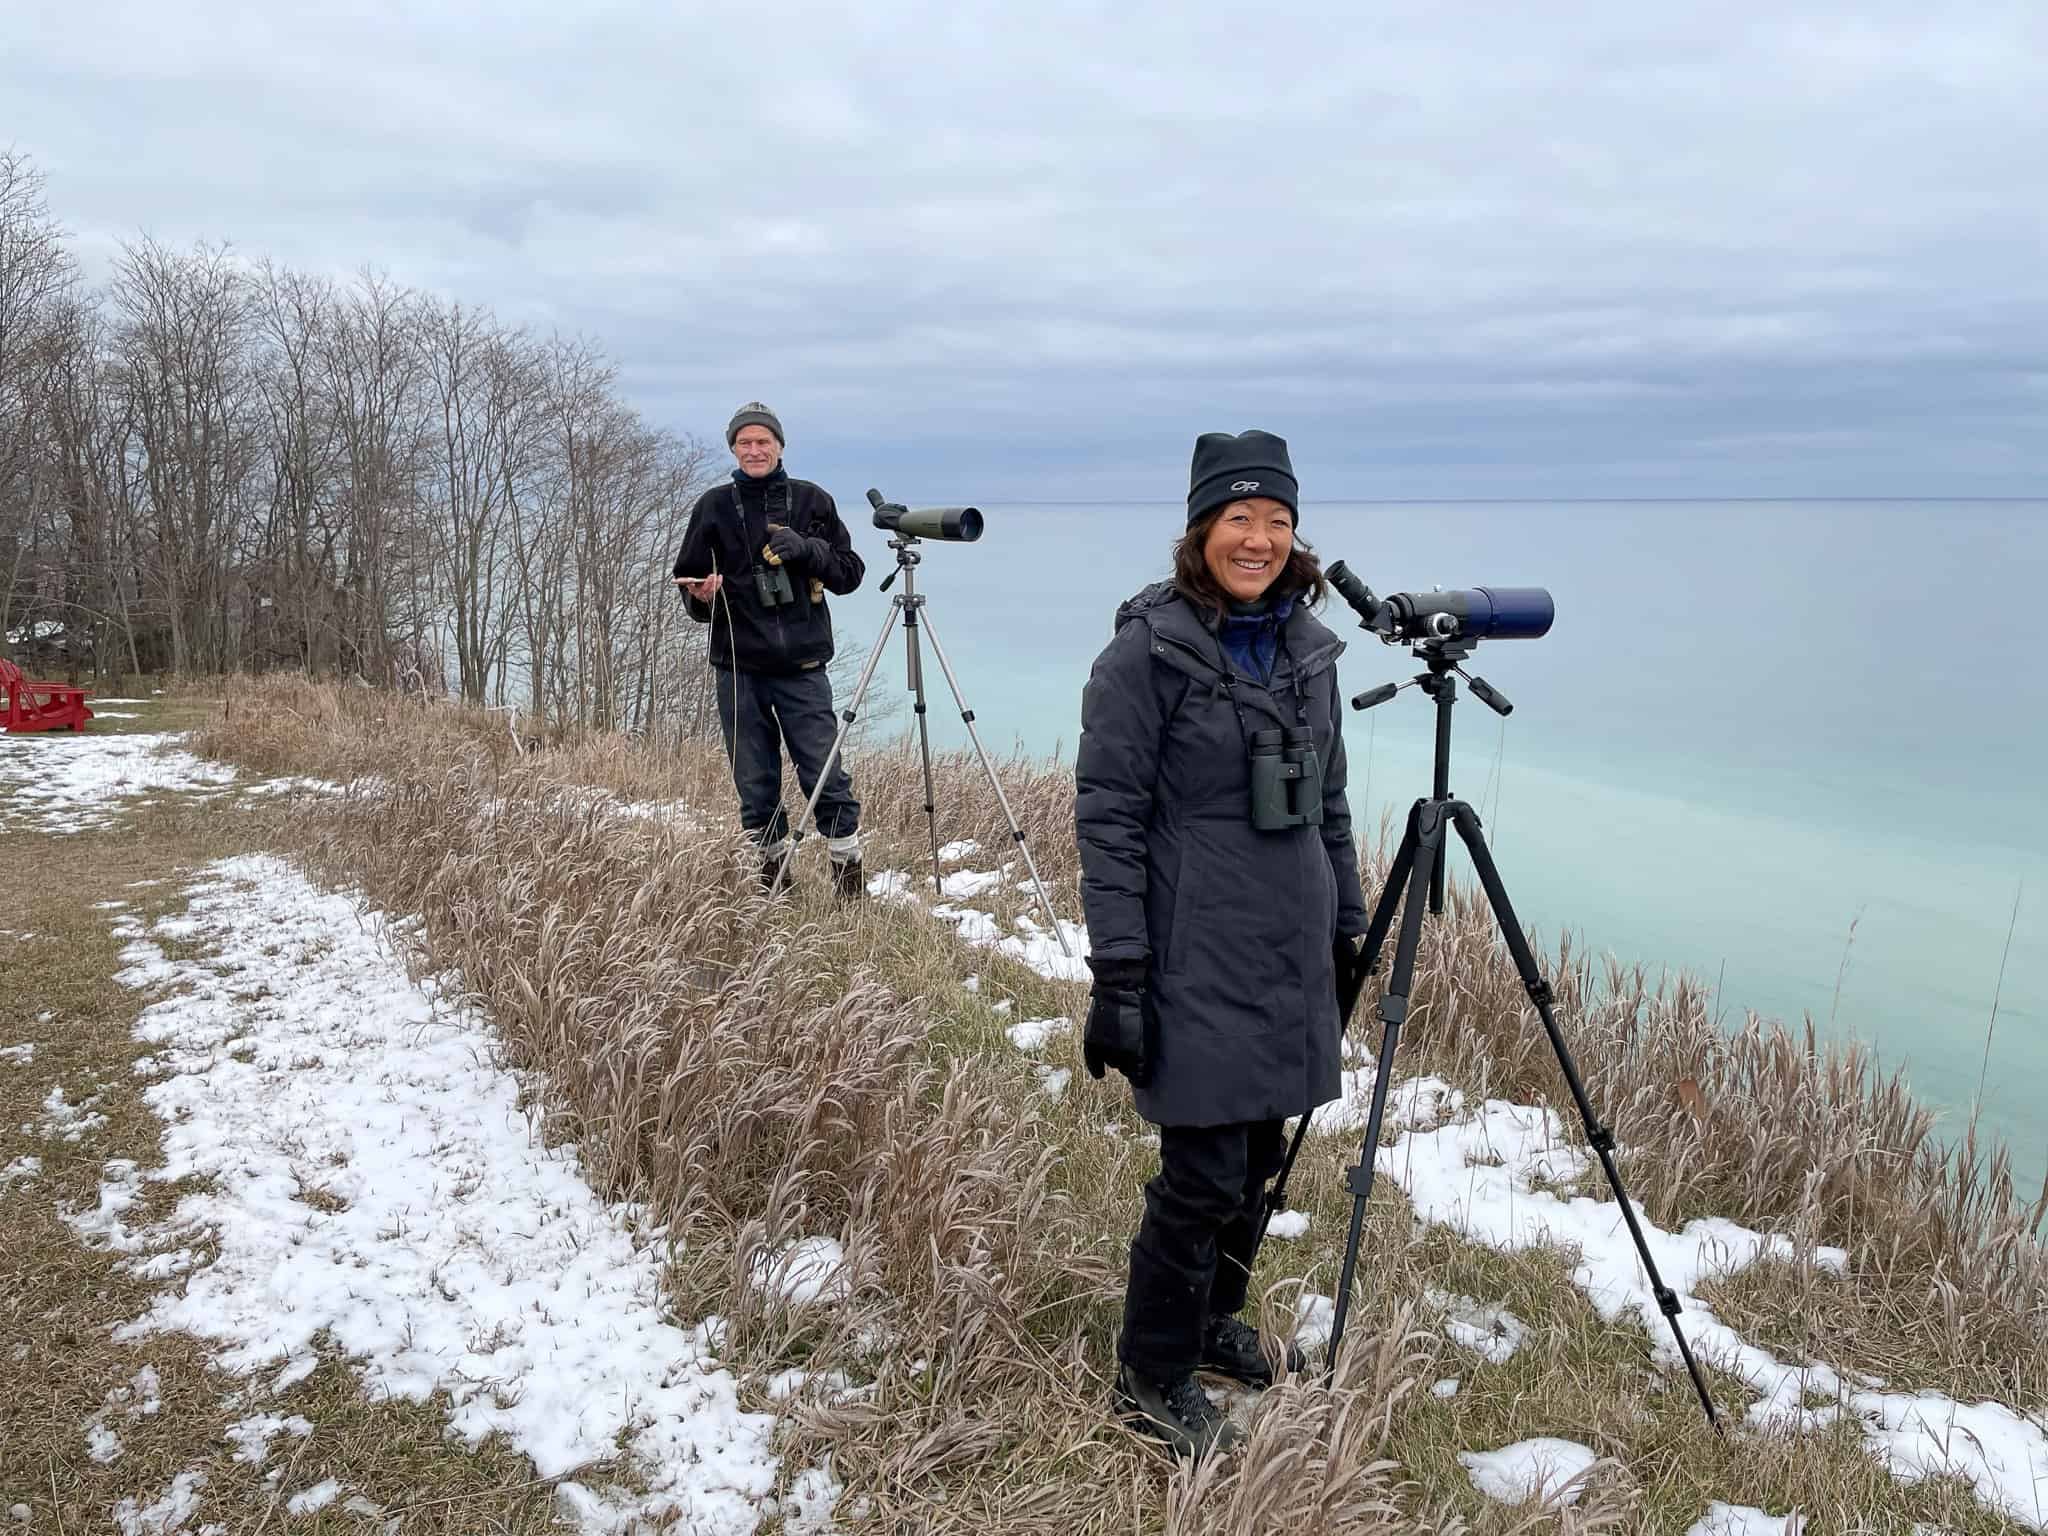 Getting all our ducks in a row: The Annual Lake Ontario Mid-winter Waterfowl Inventory